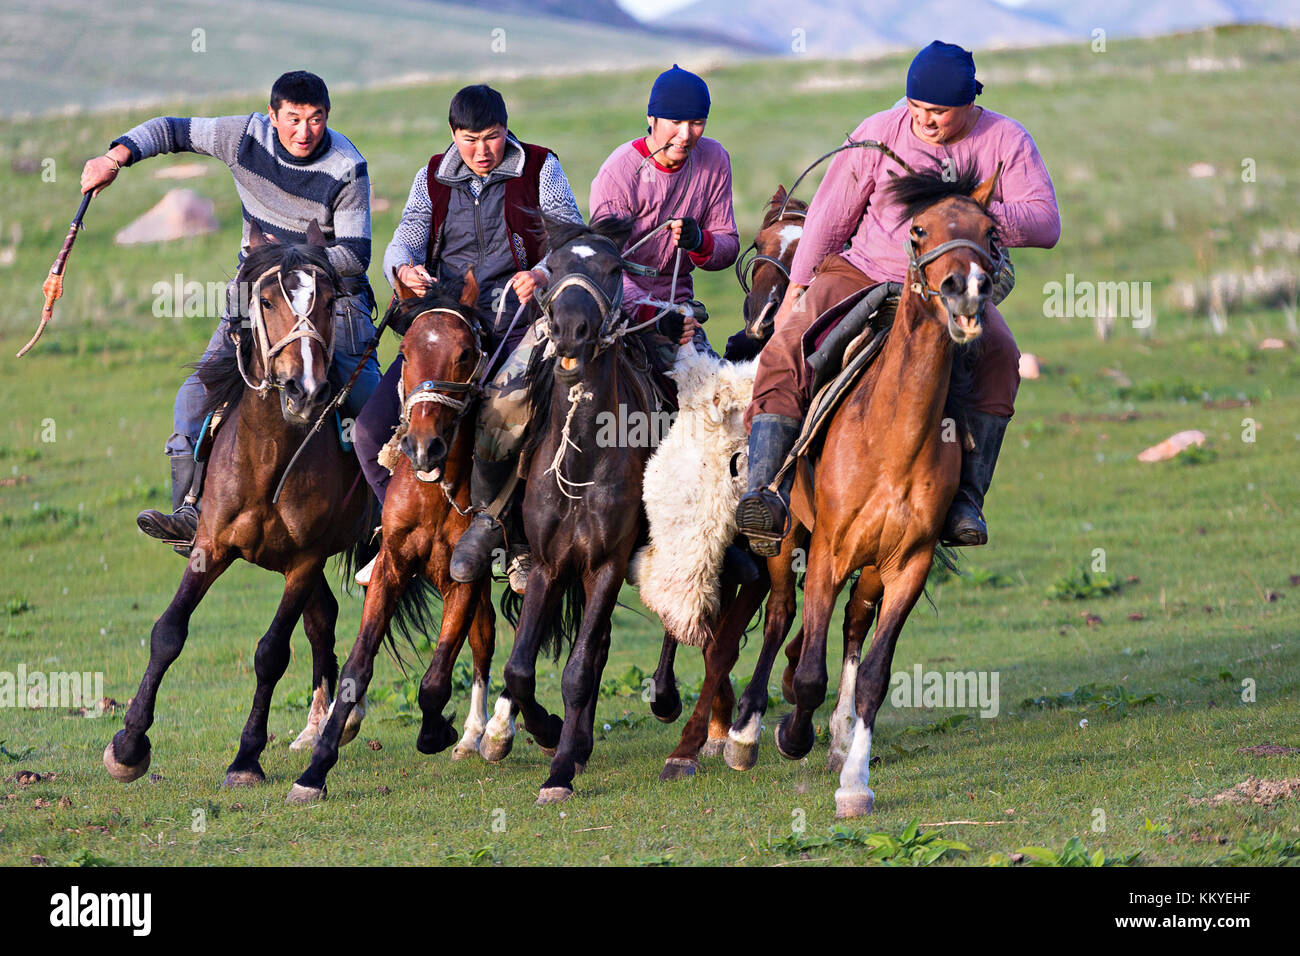 Nomadic horse riders grabbing goat carcass from each other, during traditional horse games known as Buzkashi or - Stock Image